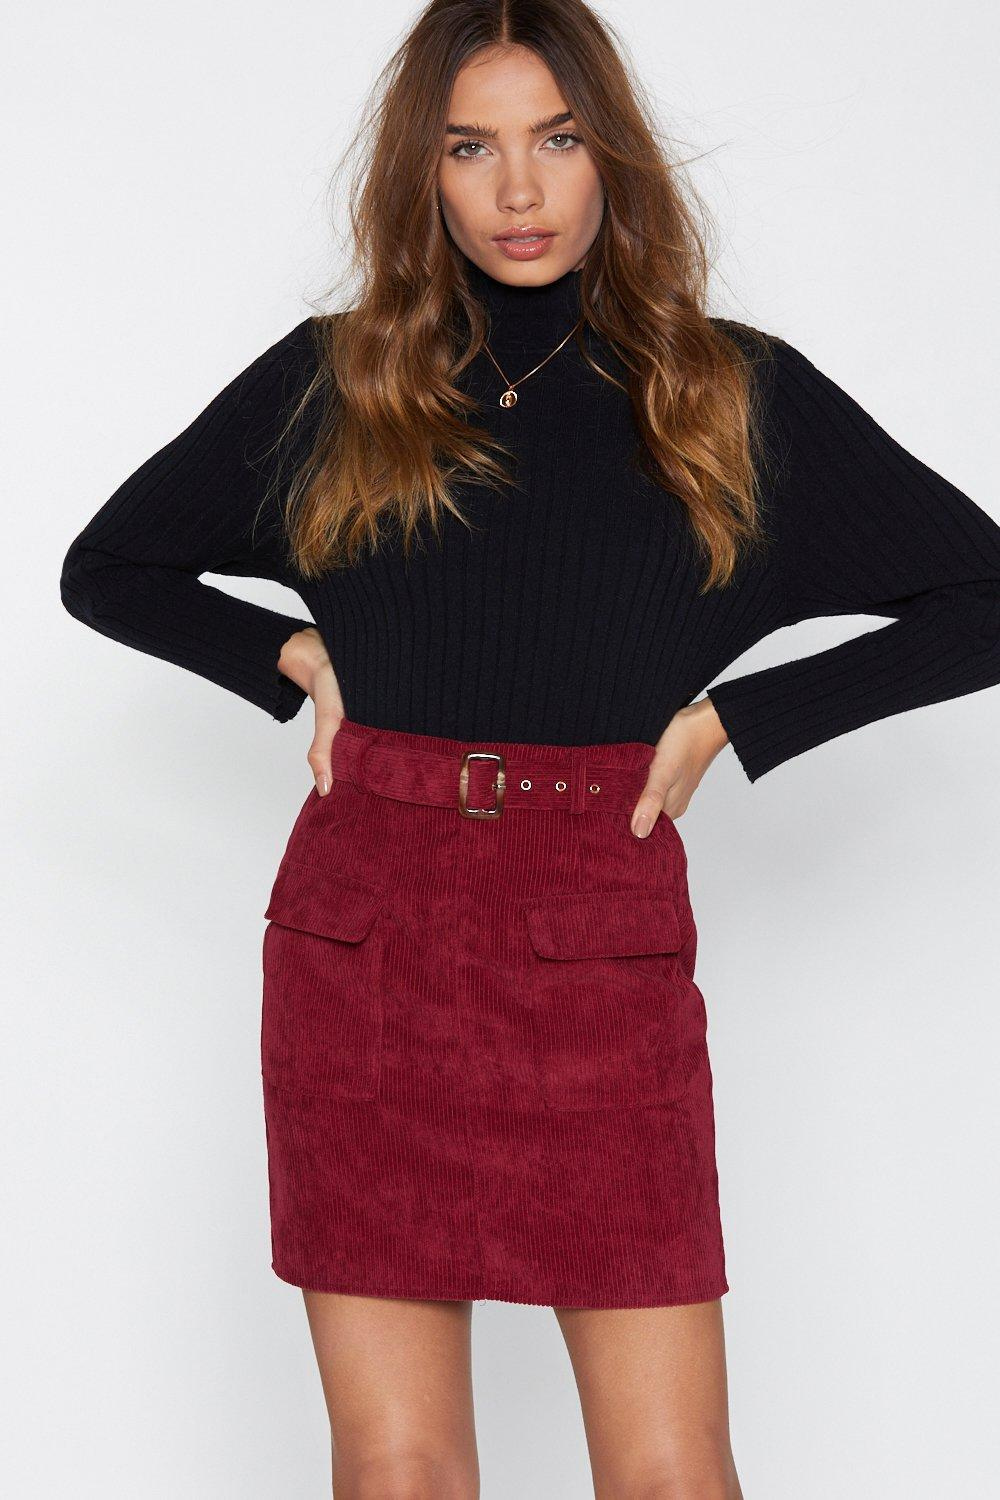 3536b426ee31 Womens Dark red Really Belt That One Corduroy Skirt. Hover to zoom